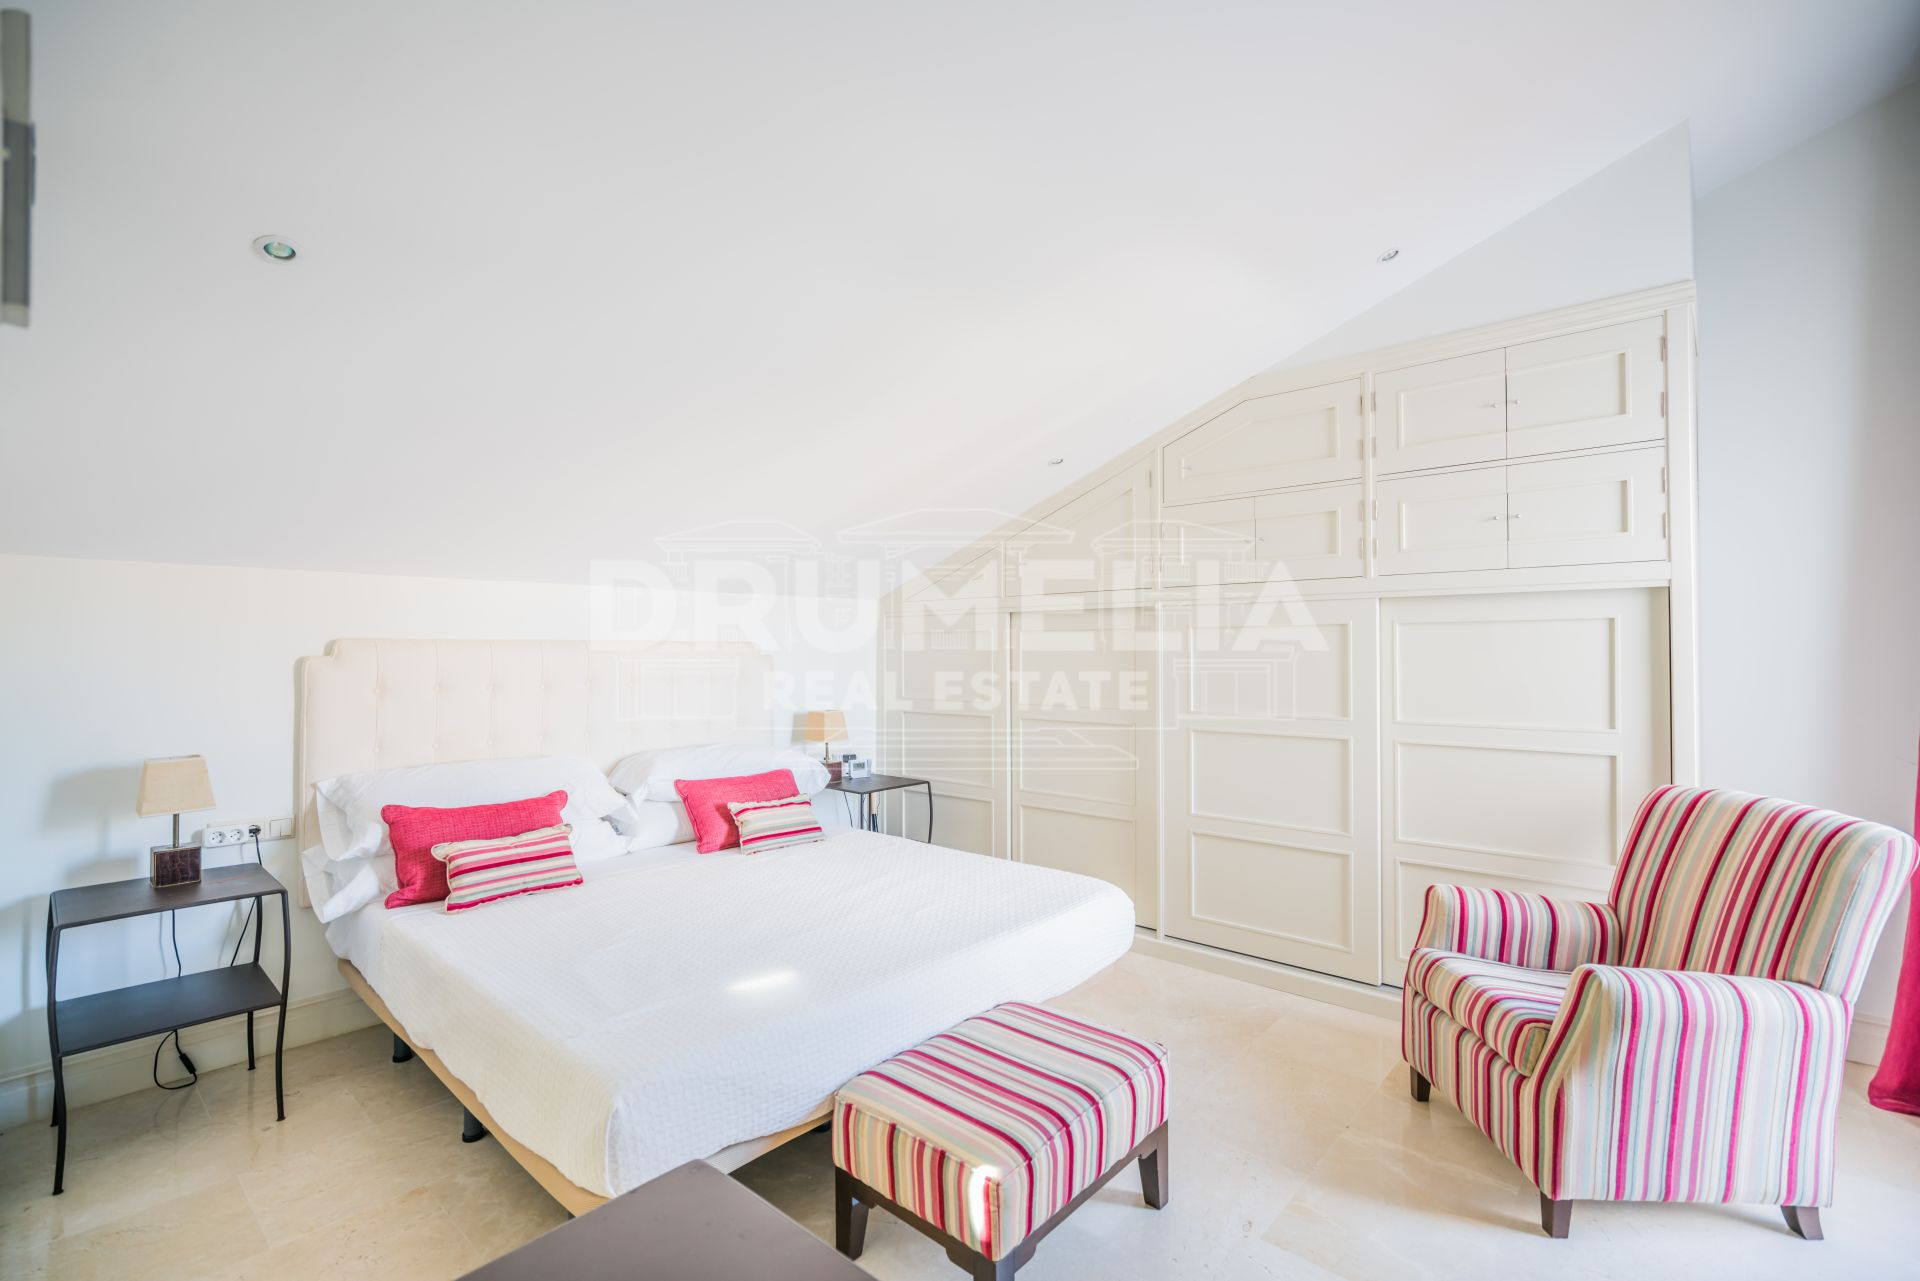 Marbella Golden Mile, Attractive Duplex Penthouse, Las Cañas Beach, Marbella Golden Mile